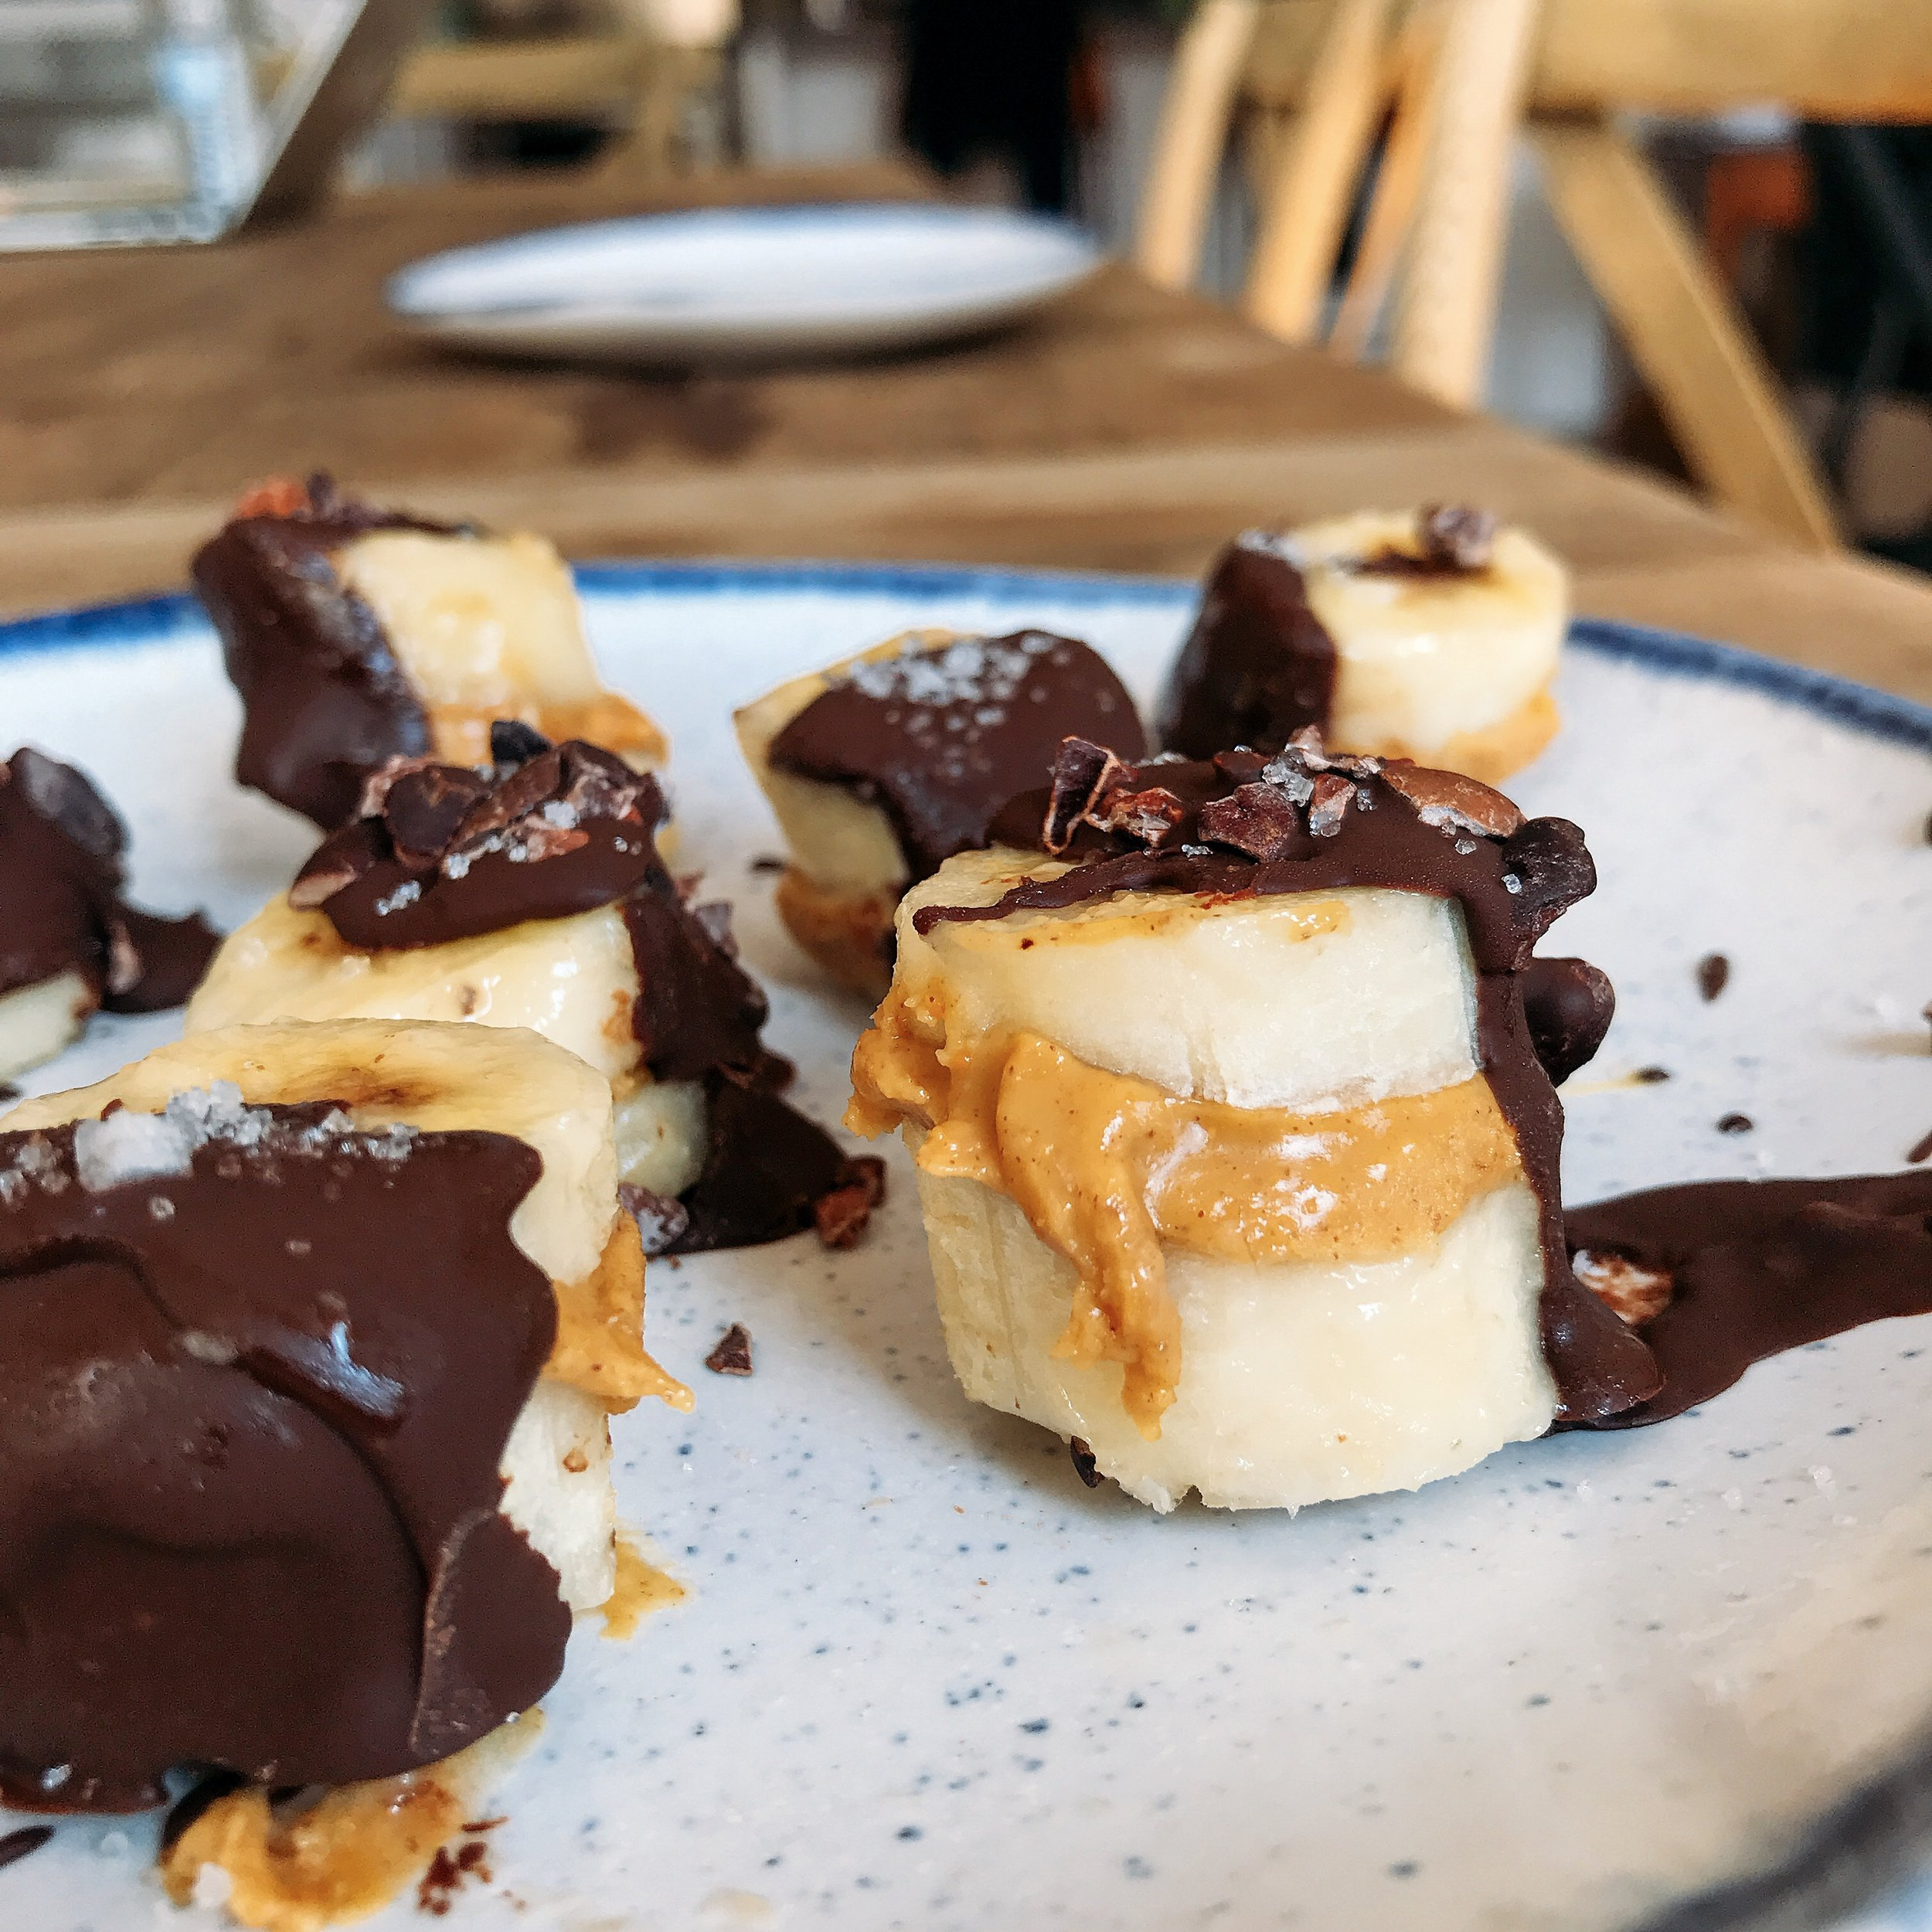 These chocolate peanut butter filled banana bites are super simple to make. Best right out of the freezer for a healthy treat.